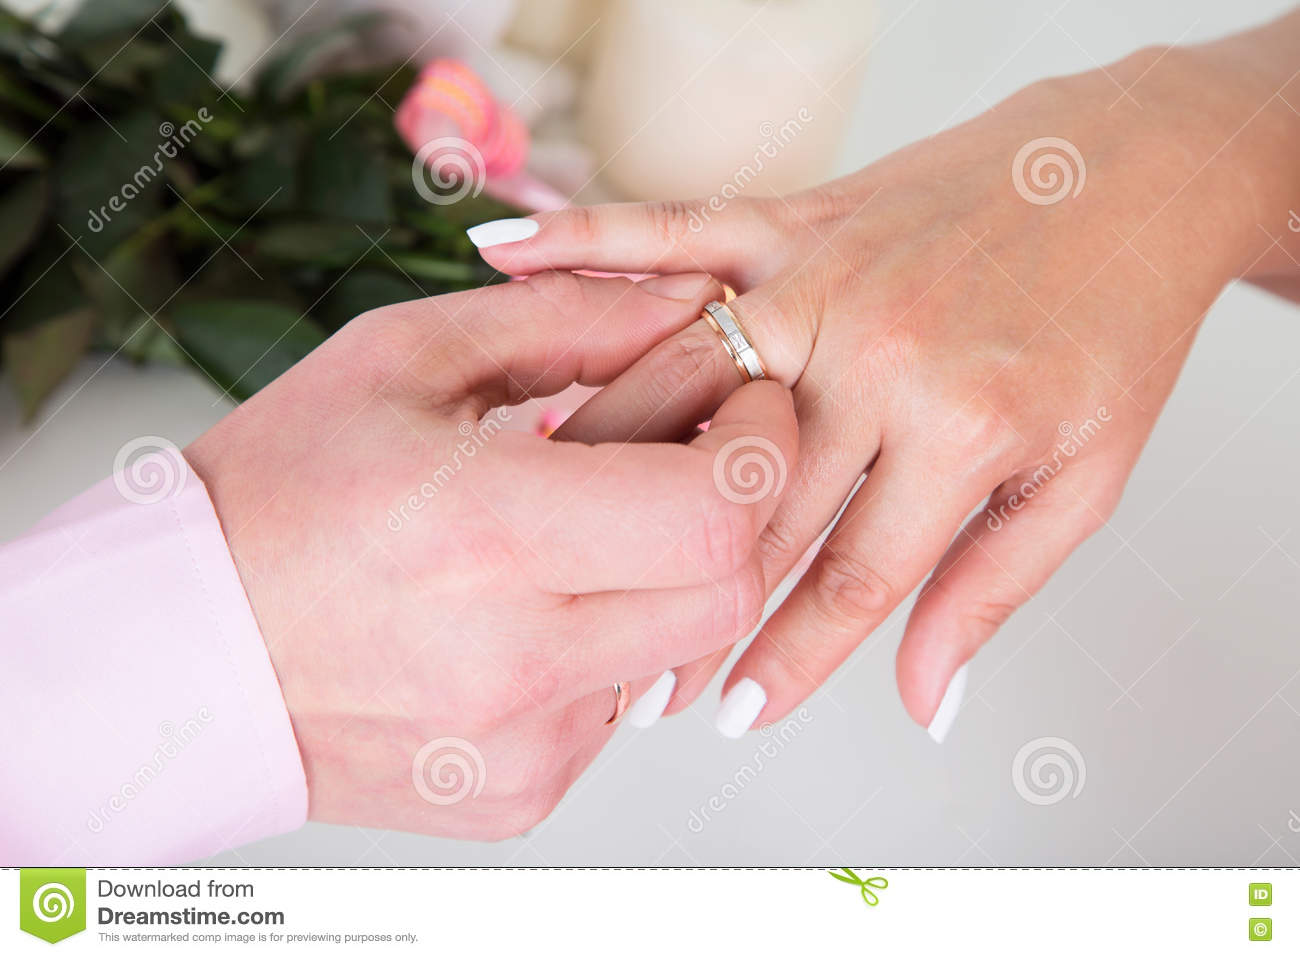 Hands With Rings Groom Putting Golden Ring On Bride\'s Finger Dur ...